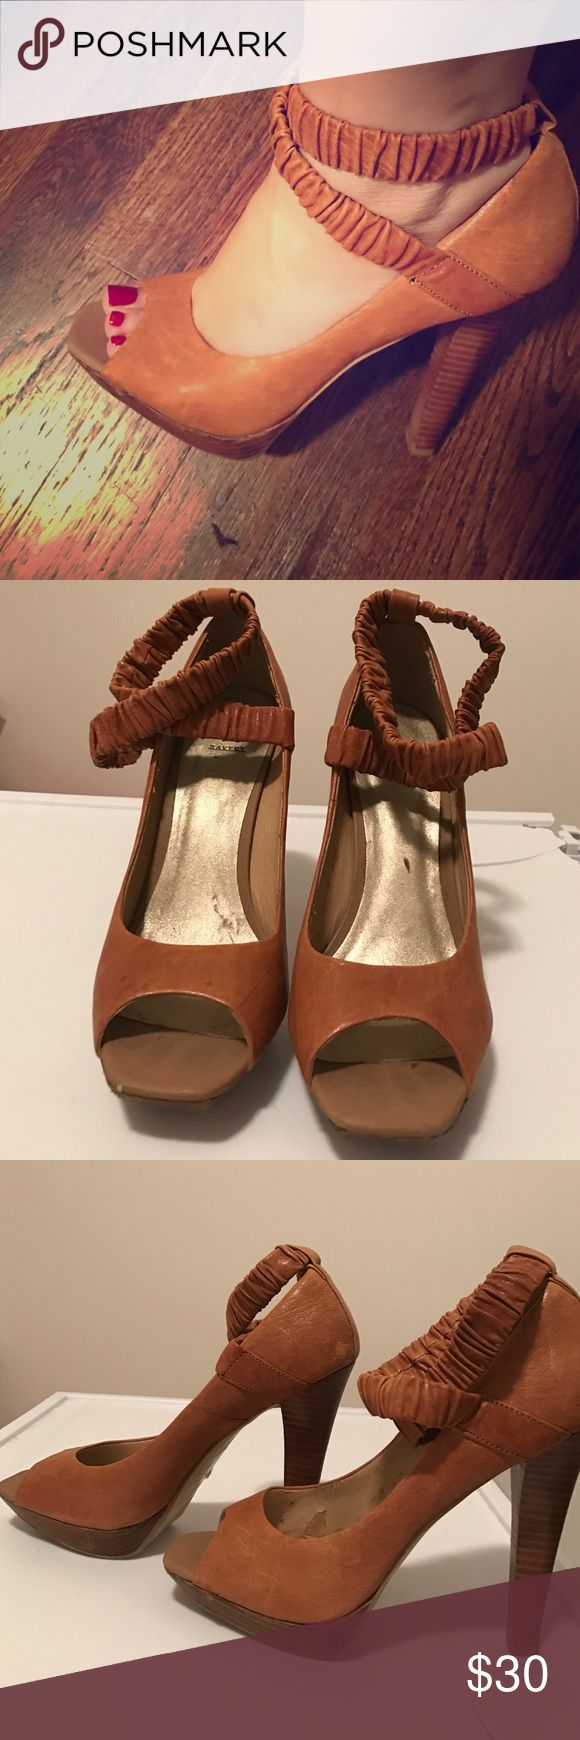 Very high brown heels Light brown chunky heels, about 5 inches high with a small platform, with unique elastic ankle strap.  If you are used to high heels they are very comfy. Bakers Shoes Heels